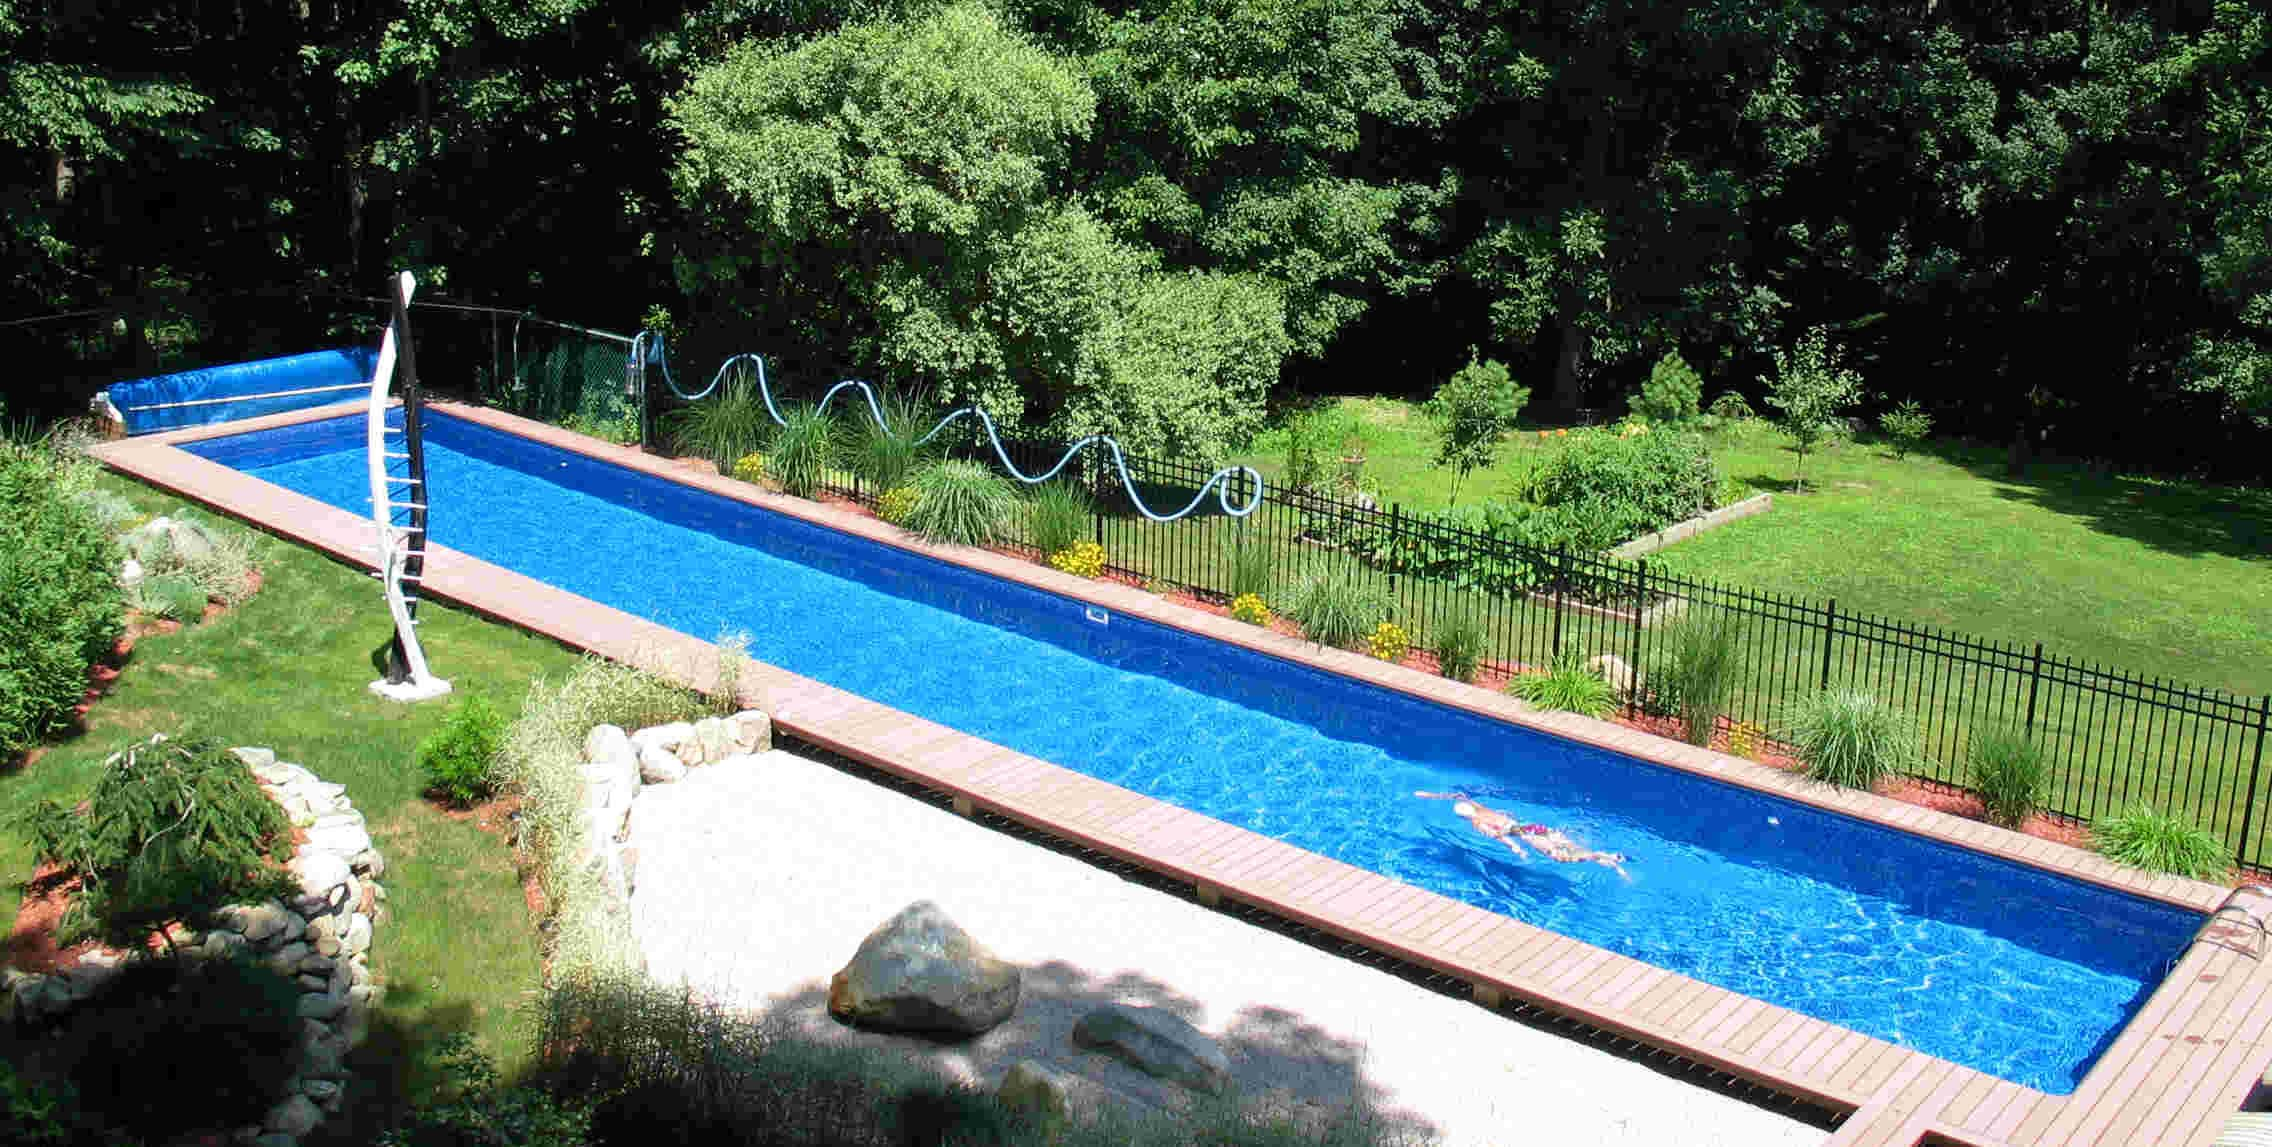 Swimming Inground Pools : Diy inground swimming pool backyard design ideas